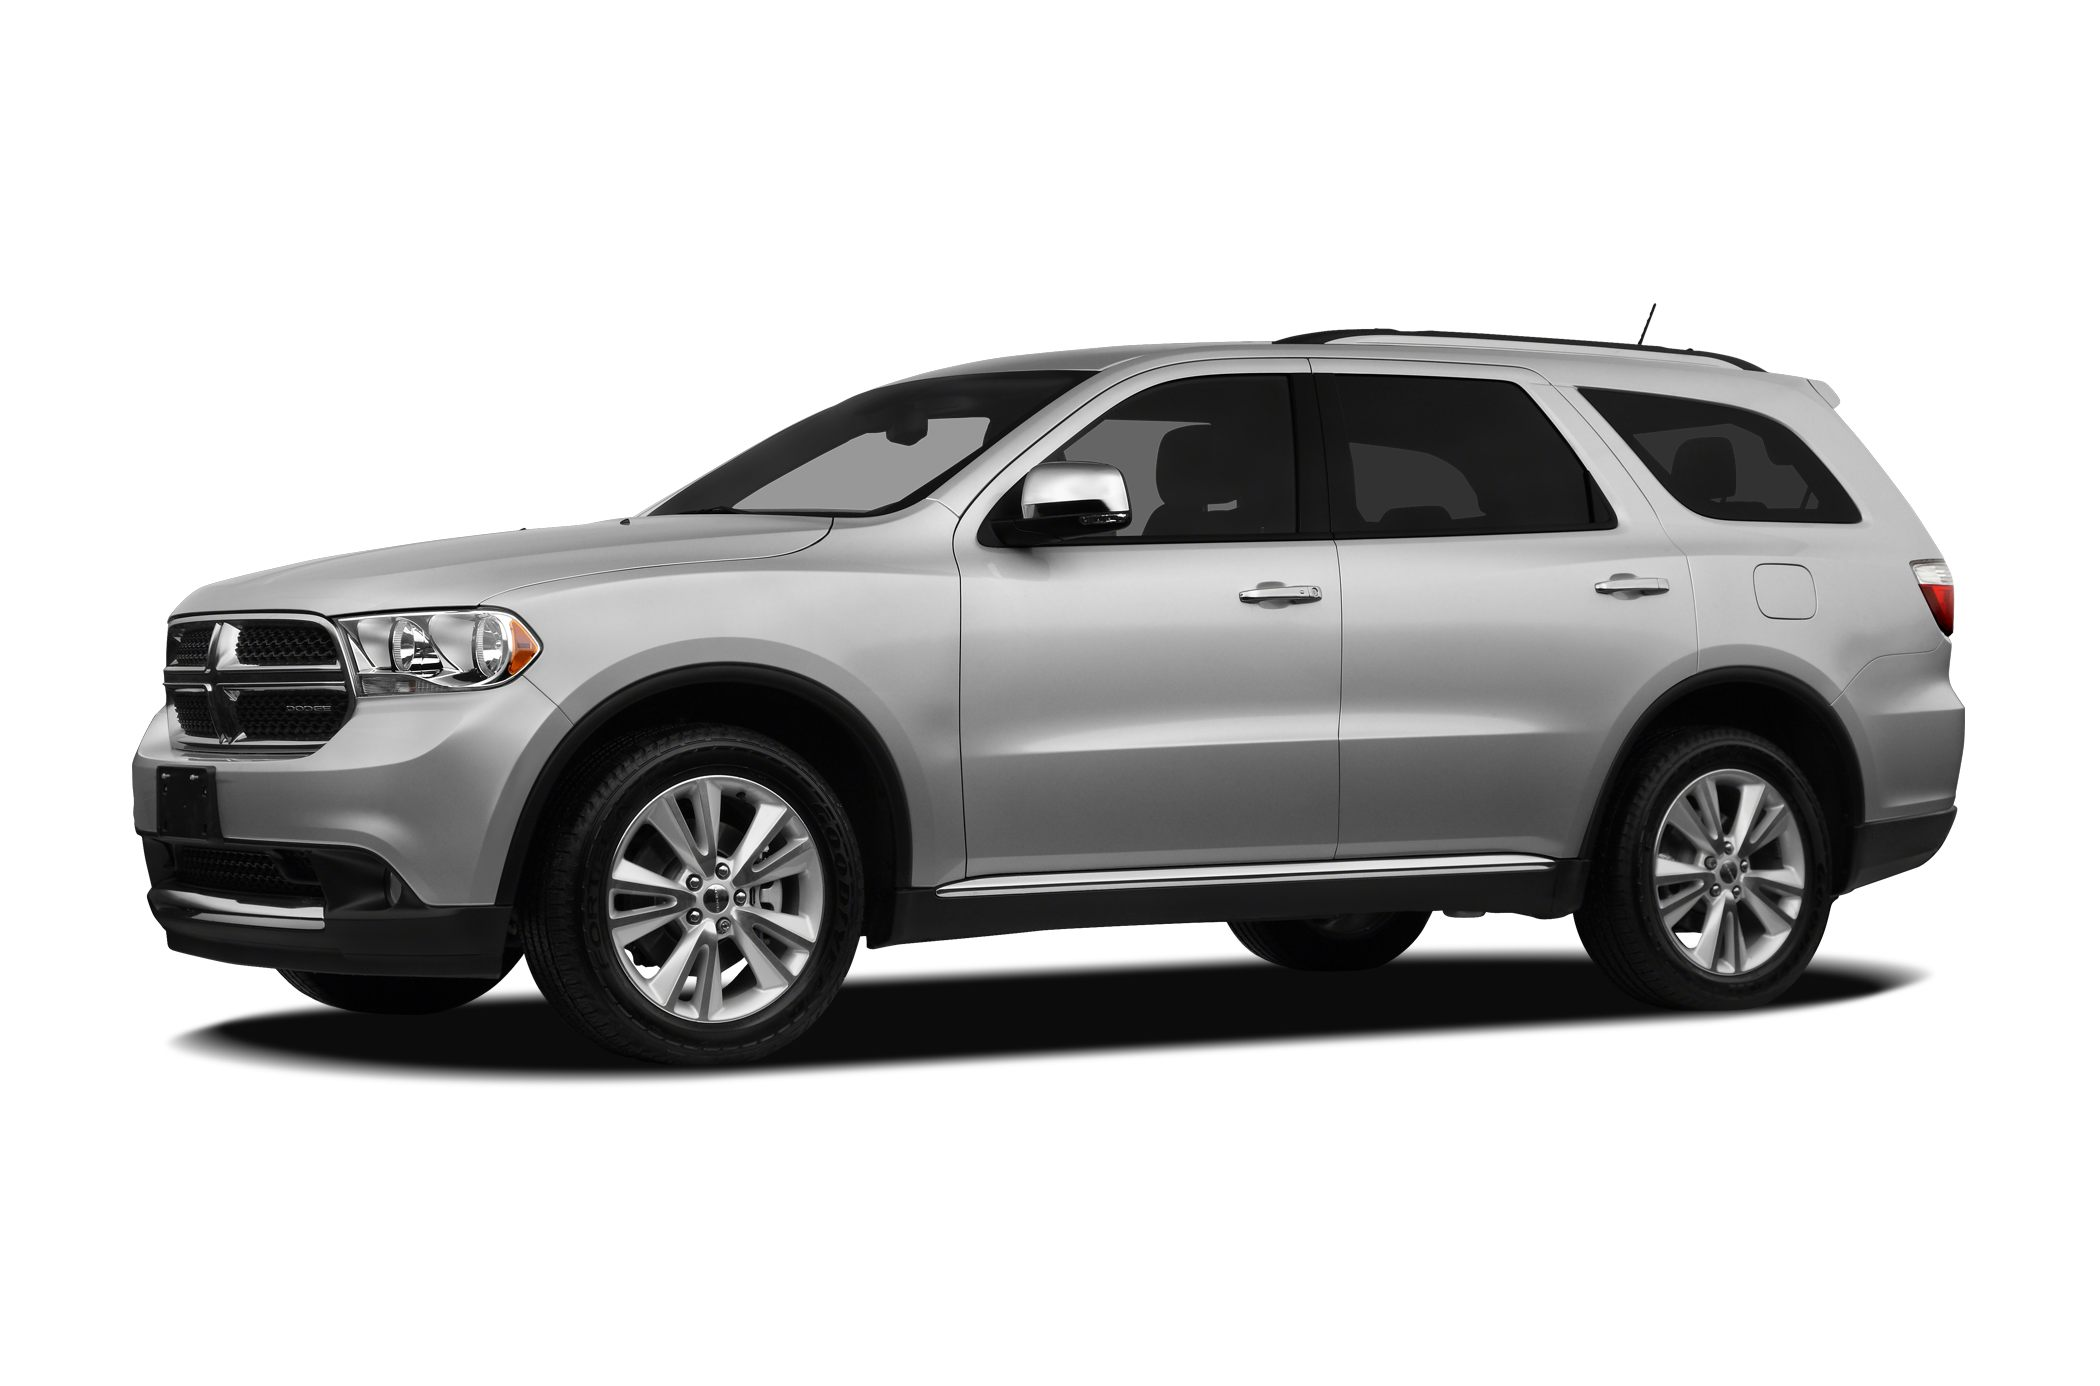 2012 Dodge Durango Crew SUV for sale in Gaithersburg for $27,376 with 29,428 miles.